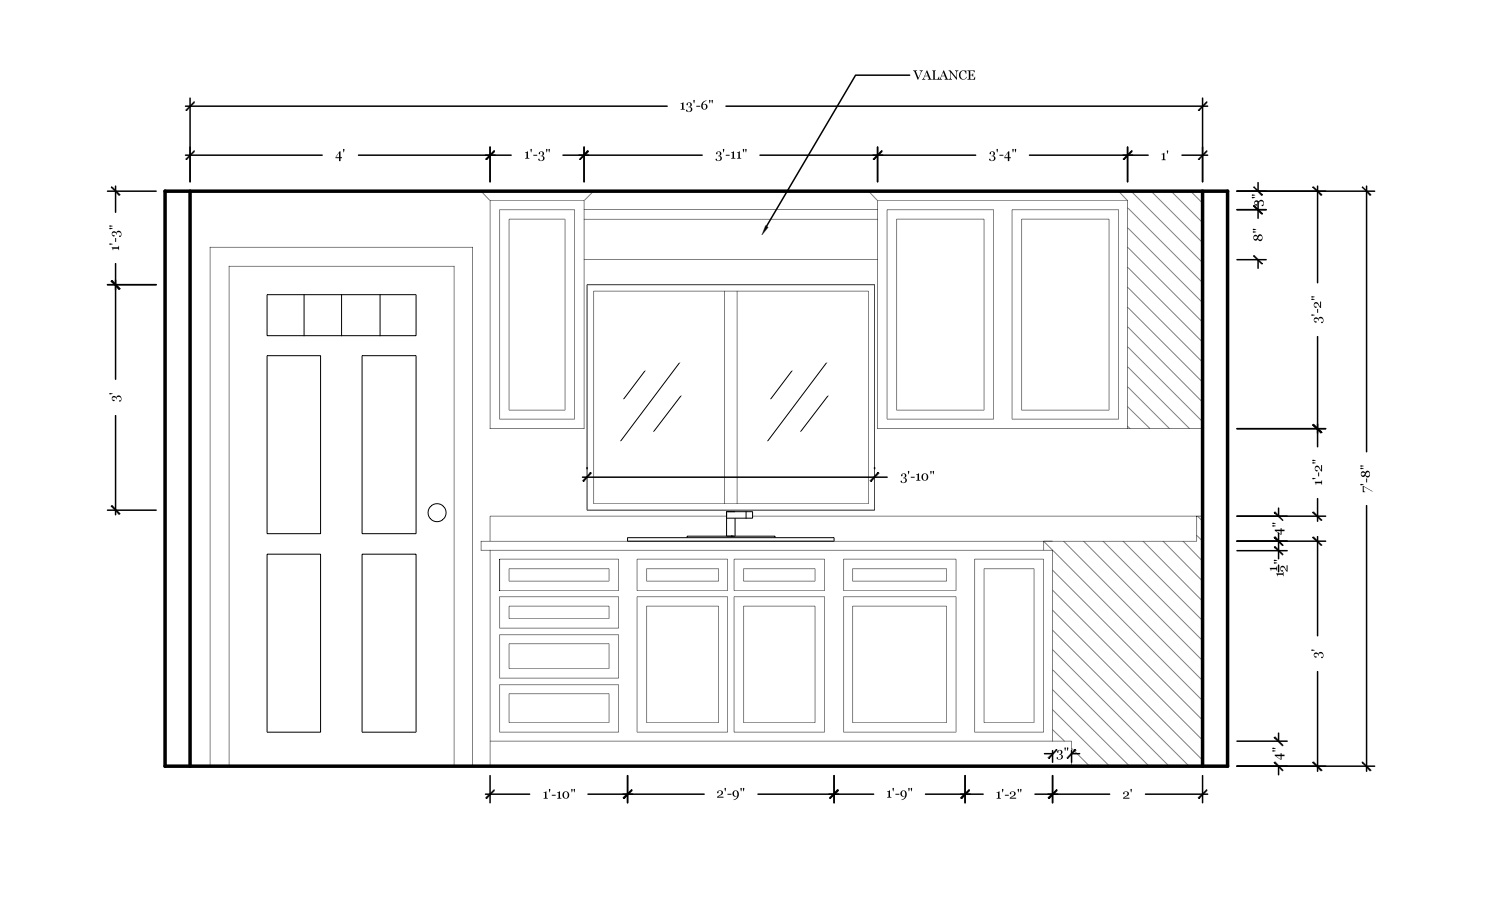 Elevation of the west kitchen wall